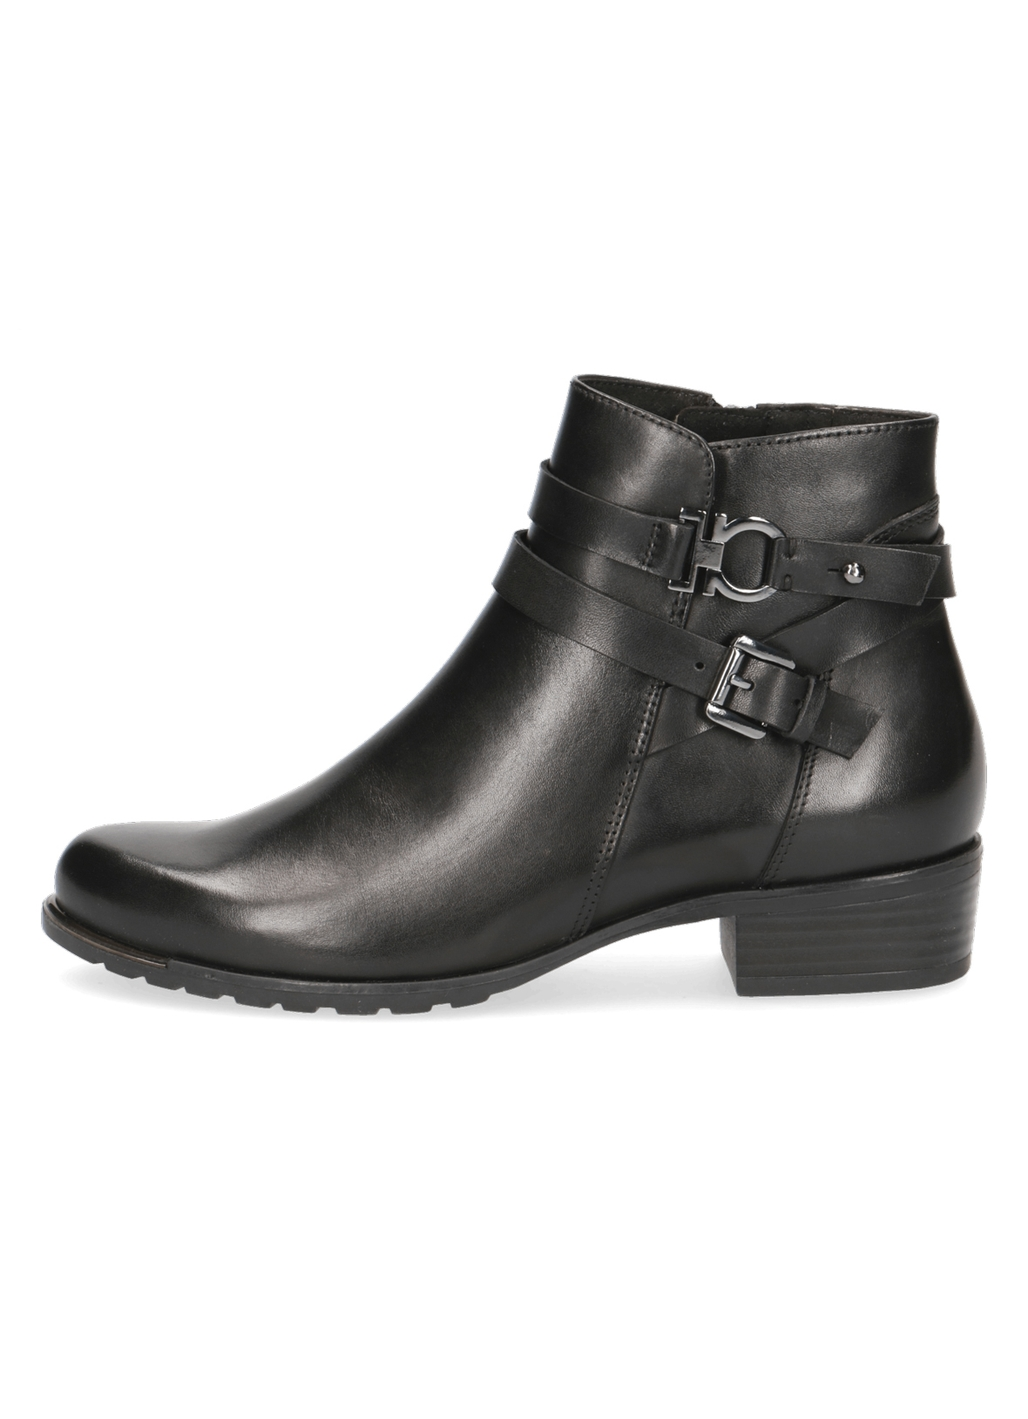 Caprice Miley Leather Ankle Boots in Black